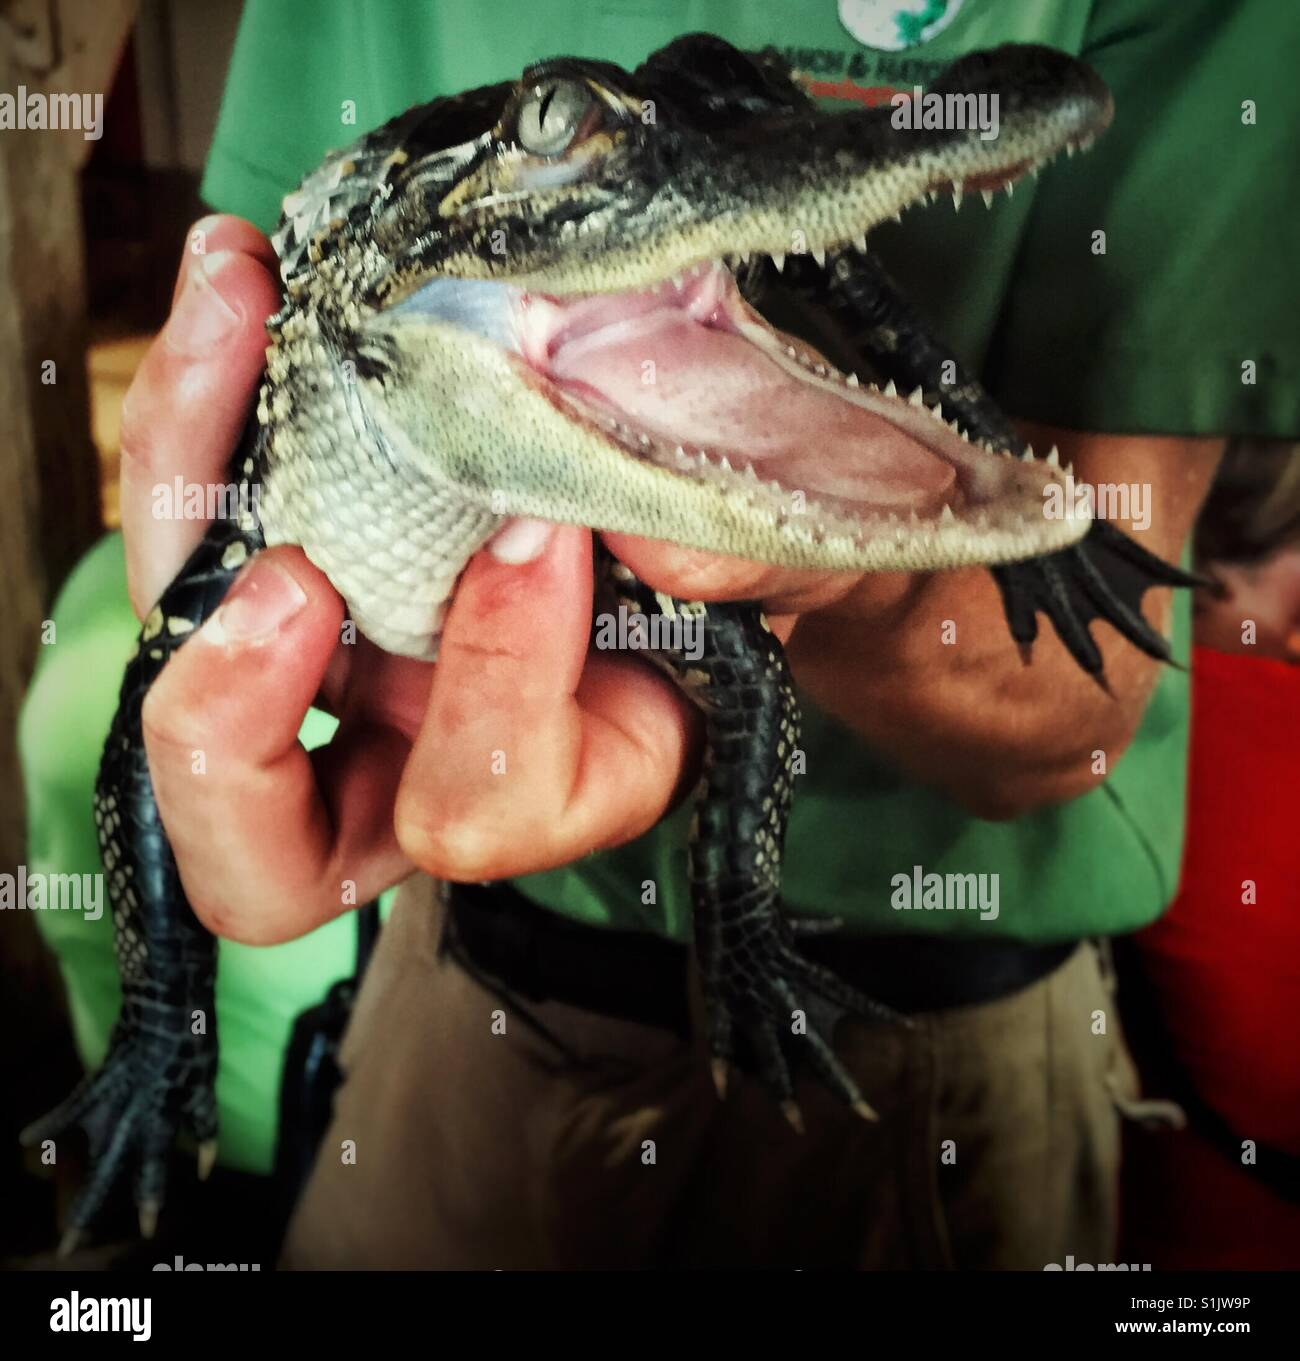 Man holding 9 month old alligator in his hand - Stock Image